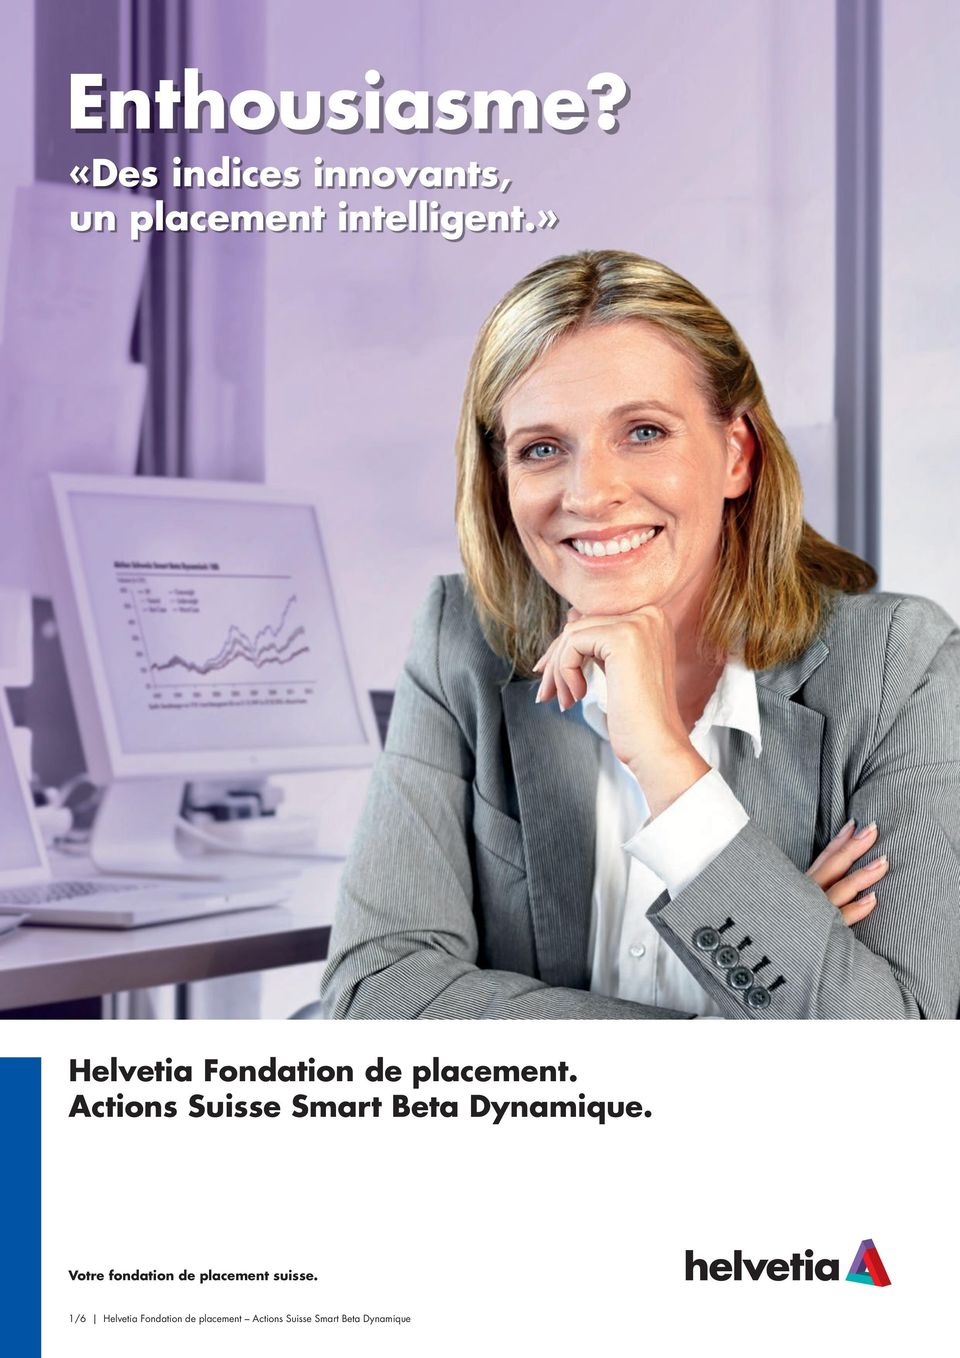 » Helvetia Fondation de placement.